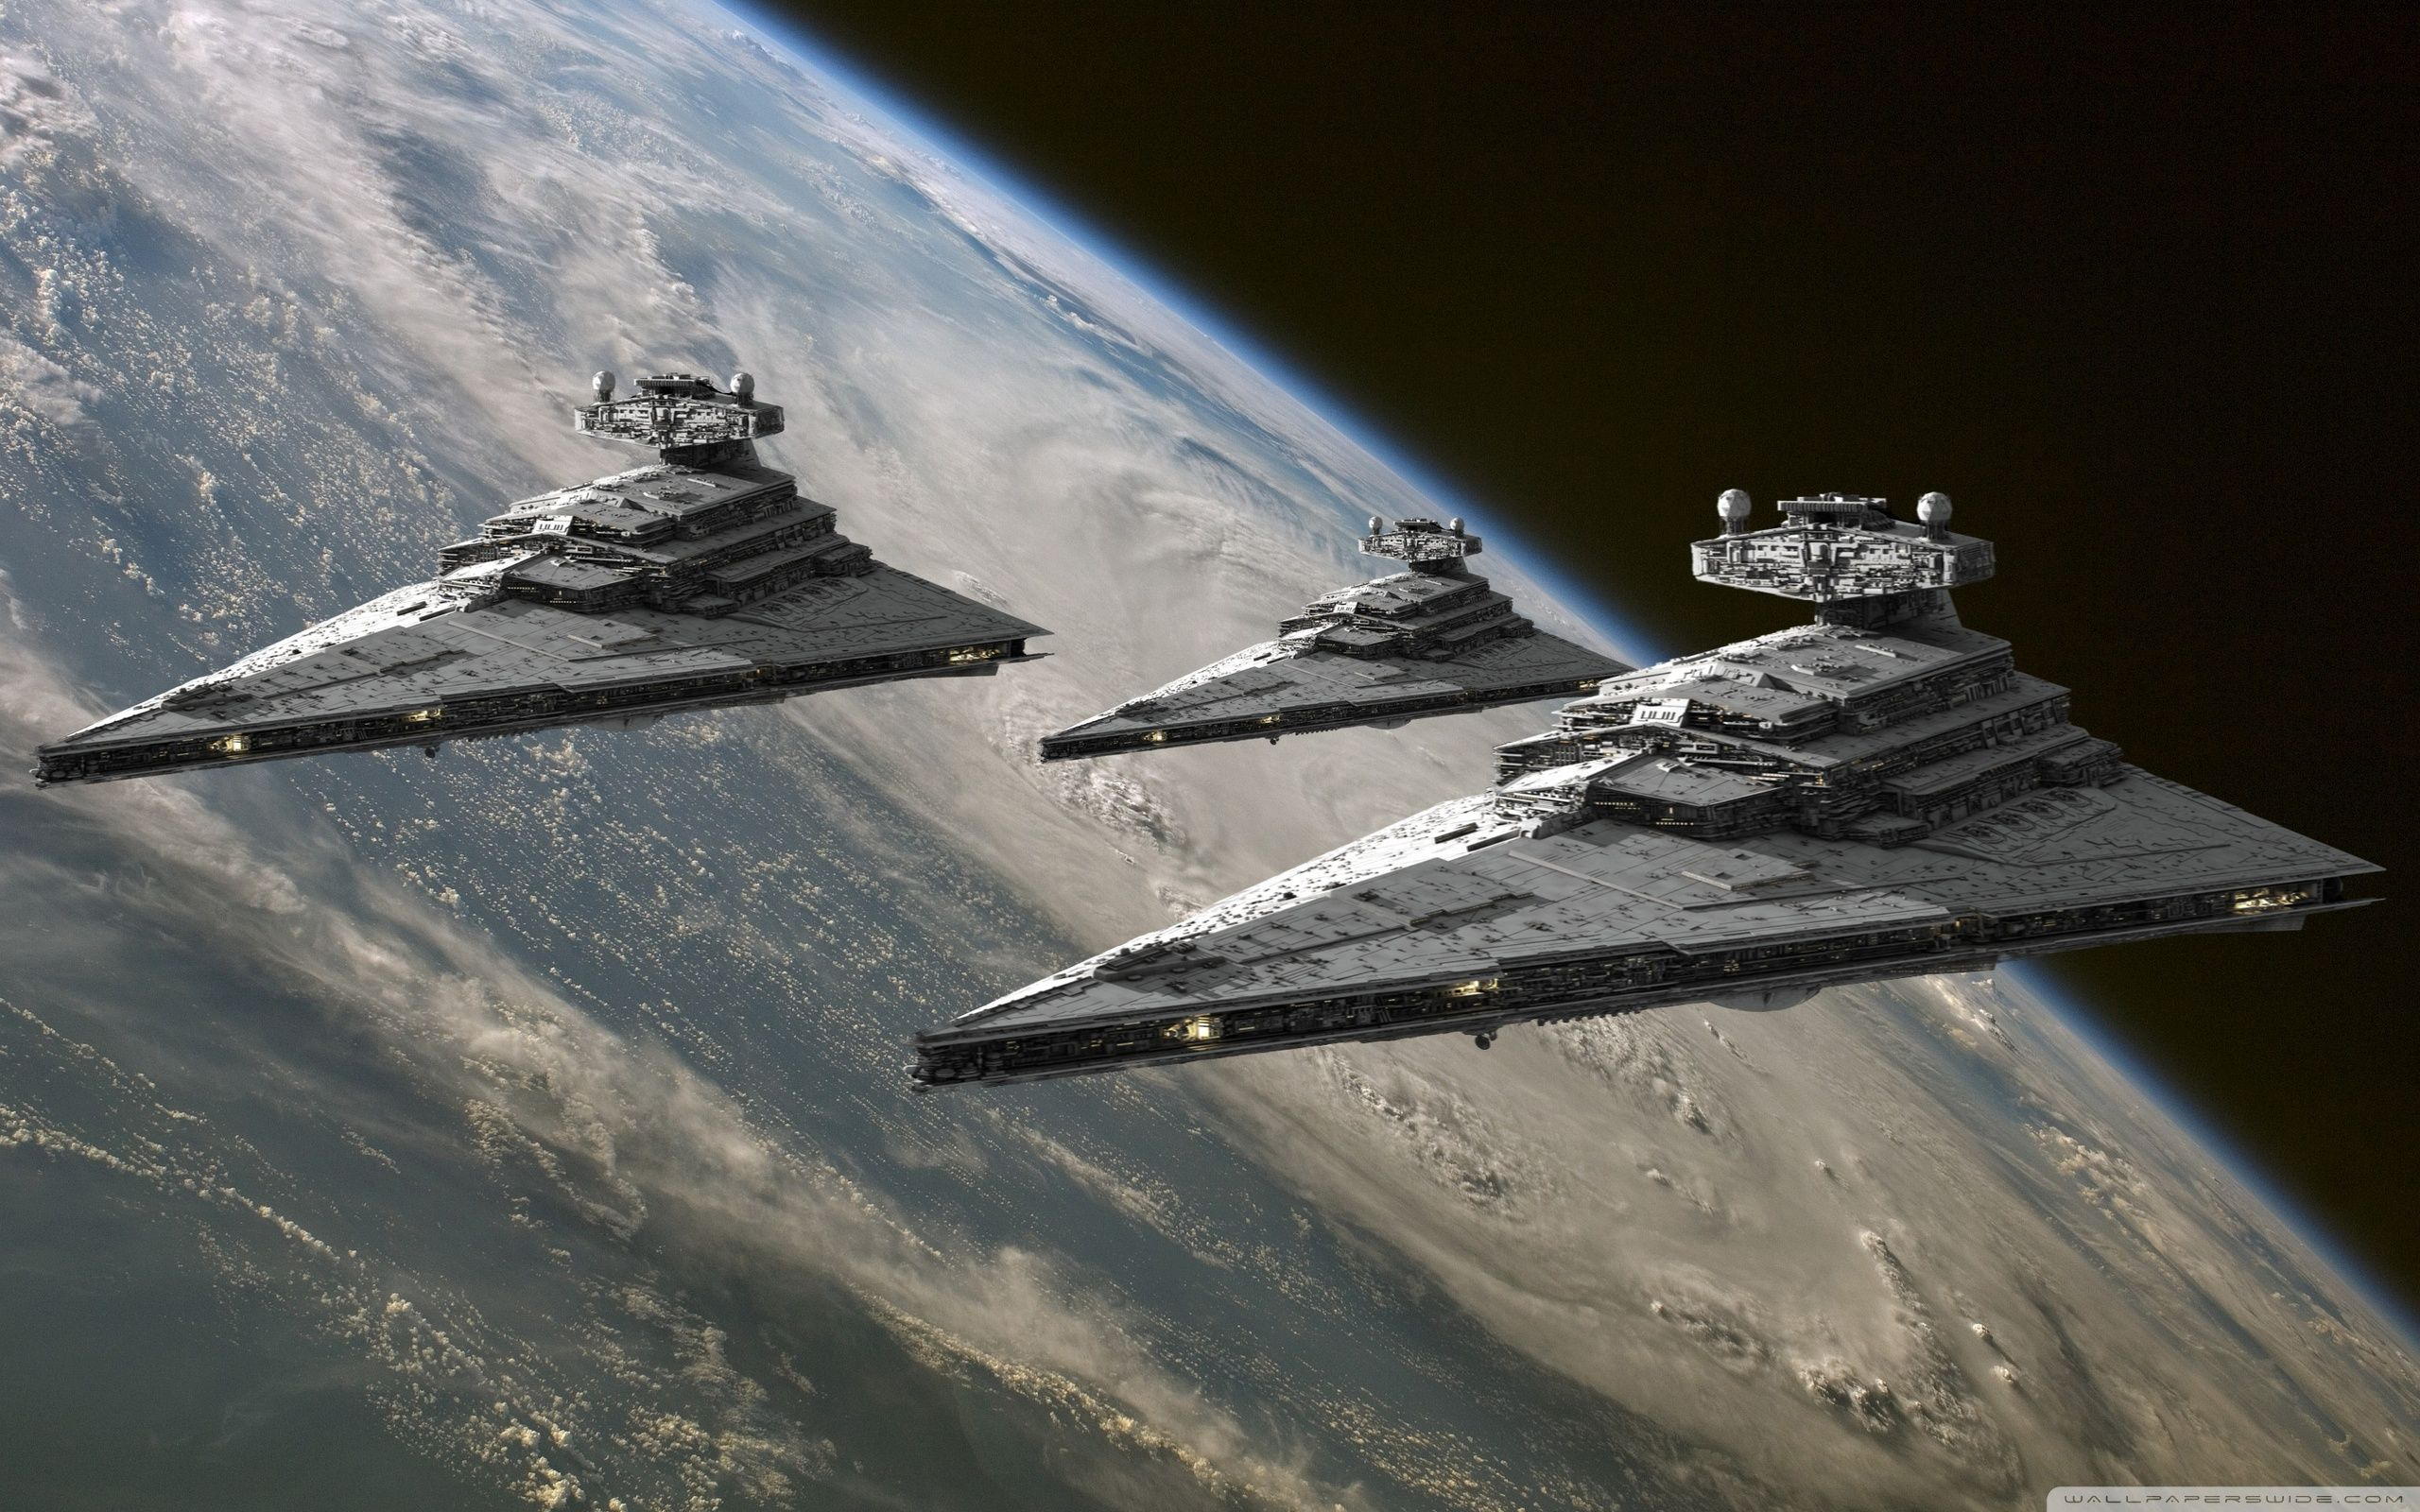 star wars ships wallpapers - wallpaper cave